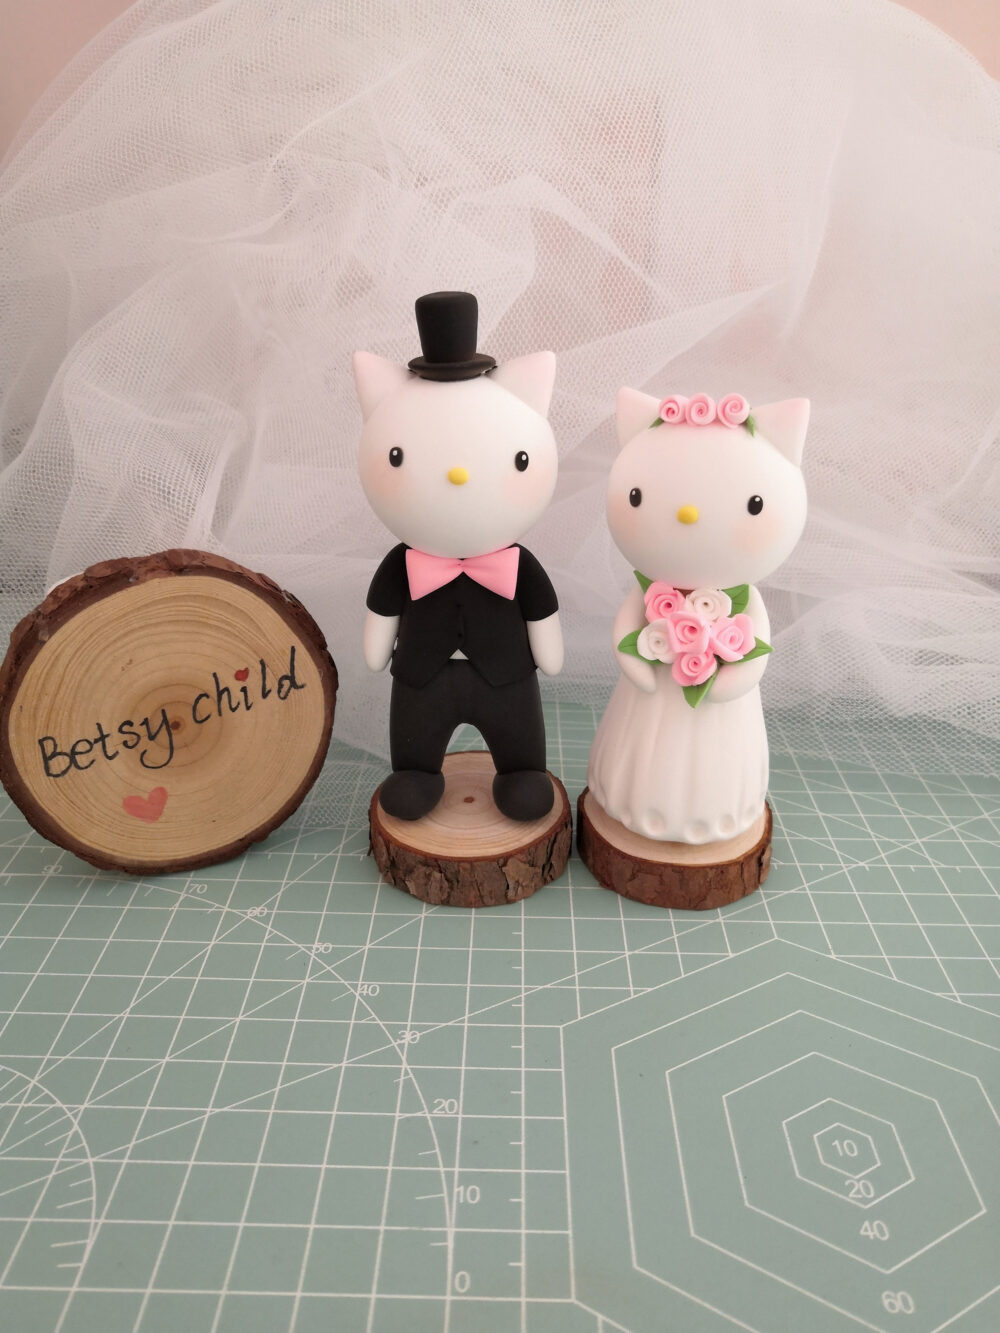 Betsy Child Cat Wedding Cake Topper Figurines Bride & Groom Custom Cake Topper